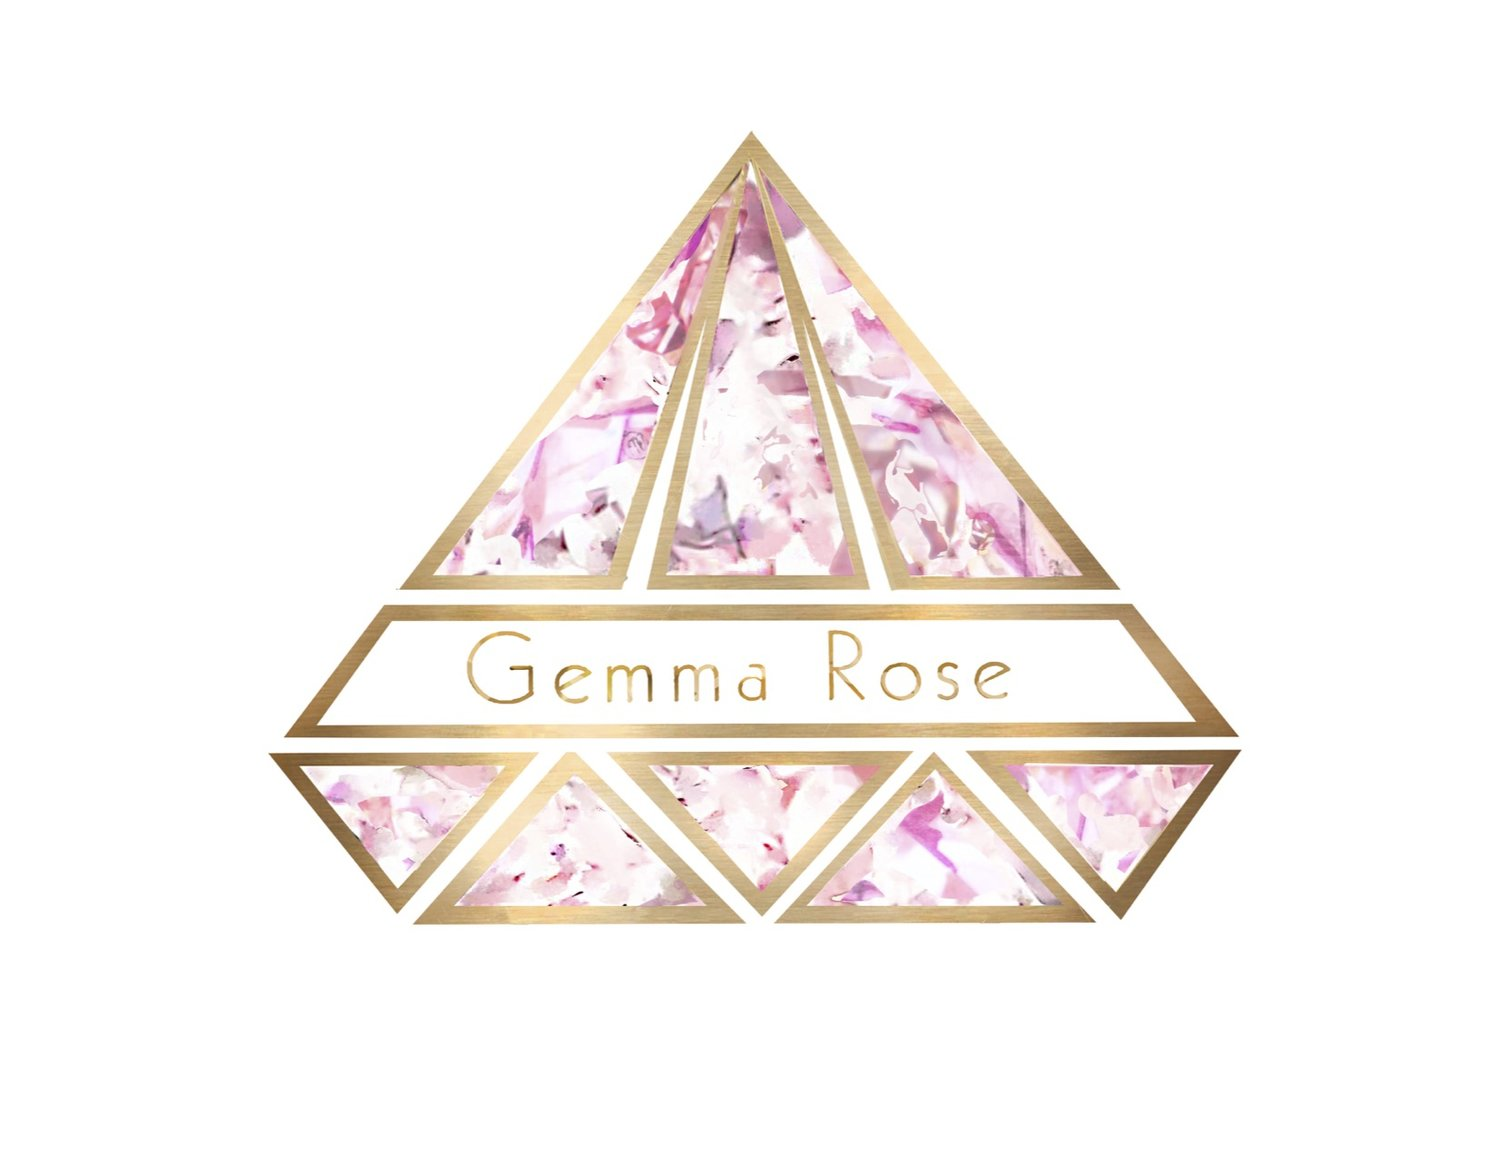 Gemma Rose Jewelry